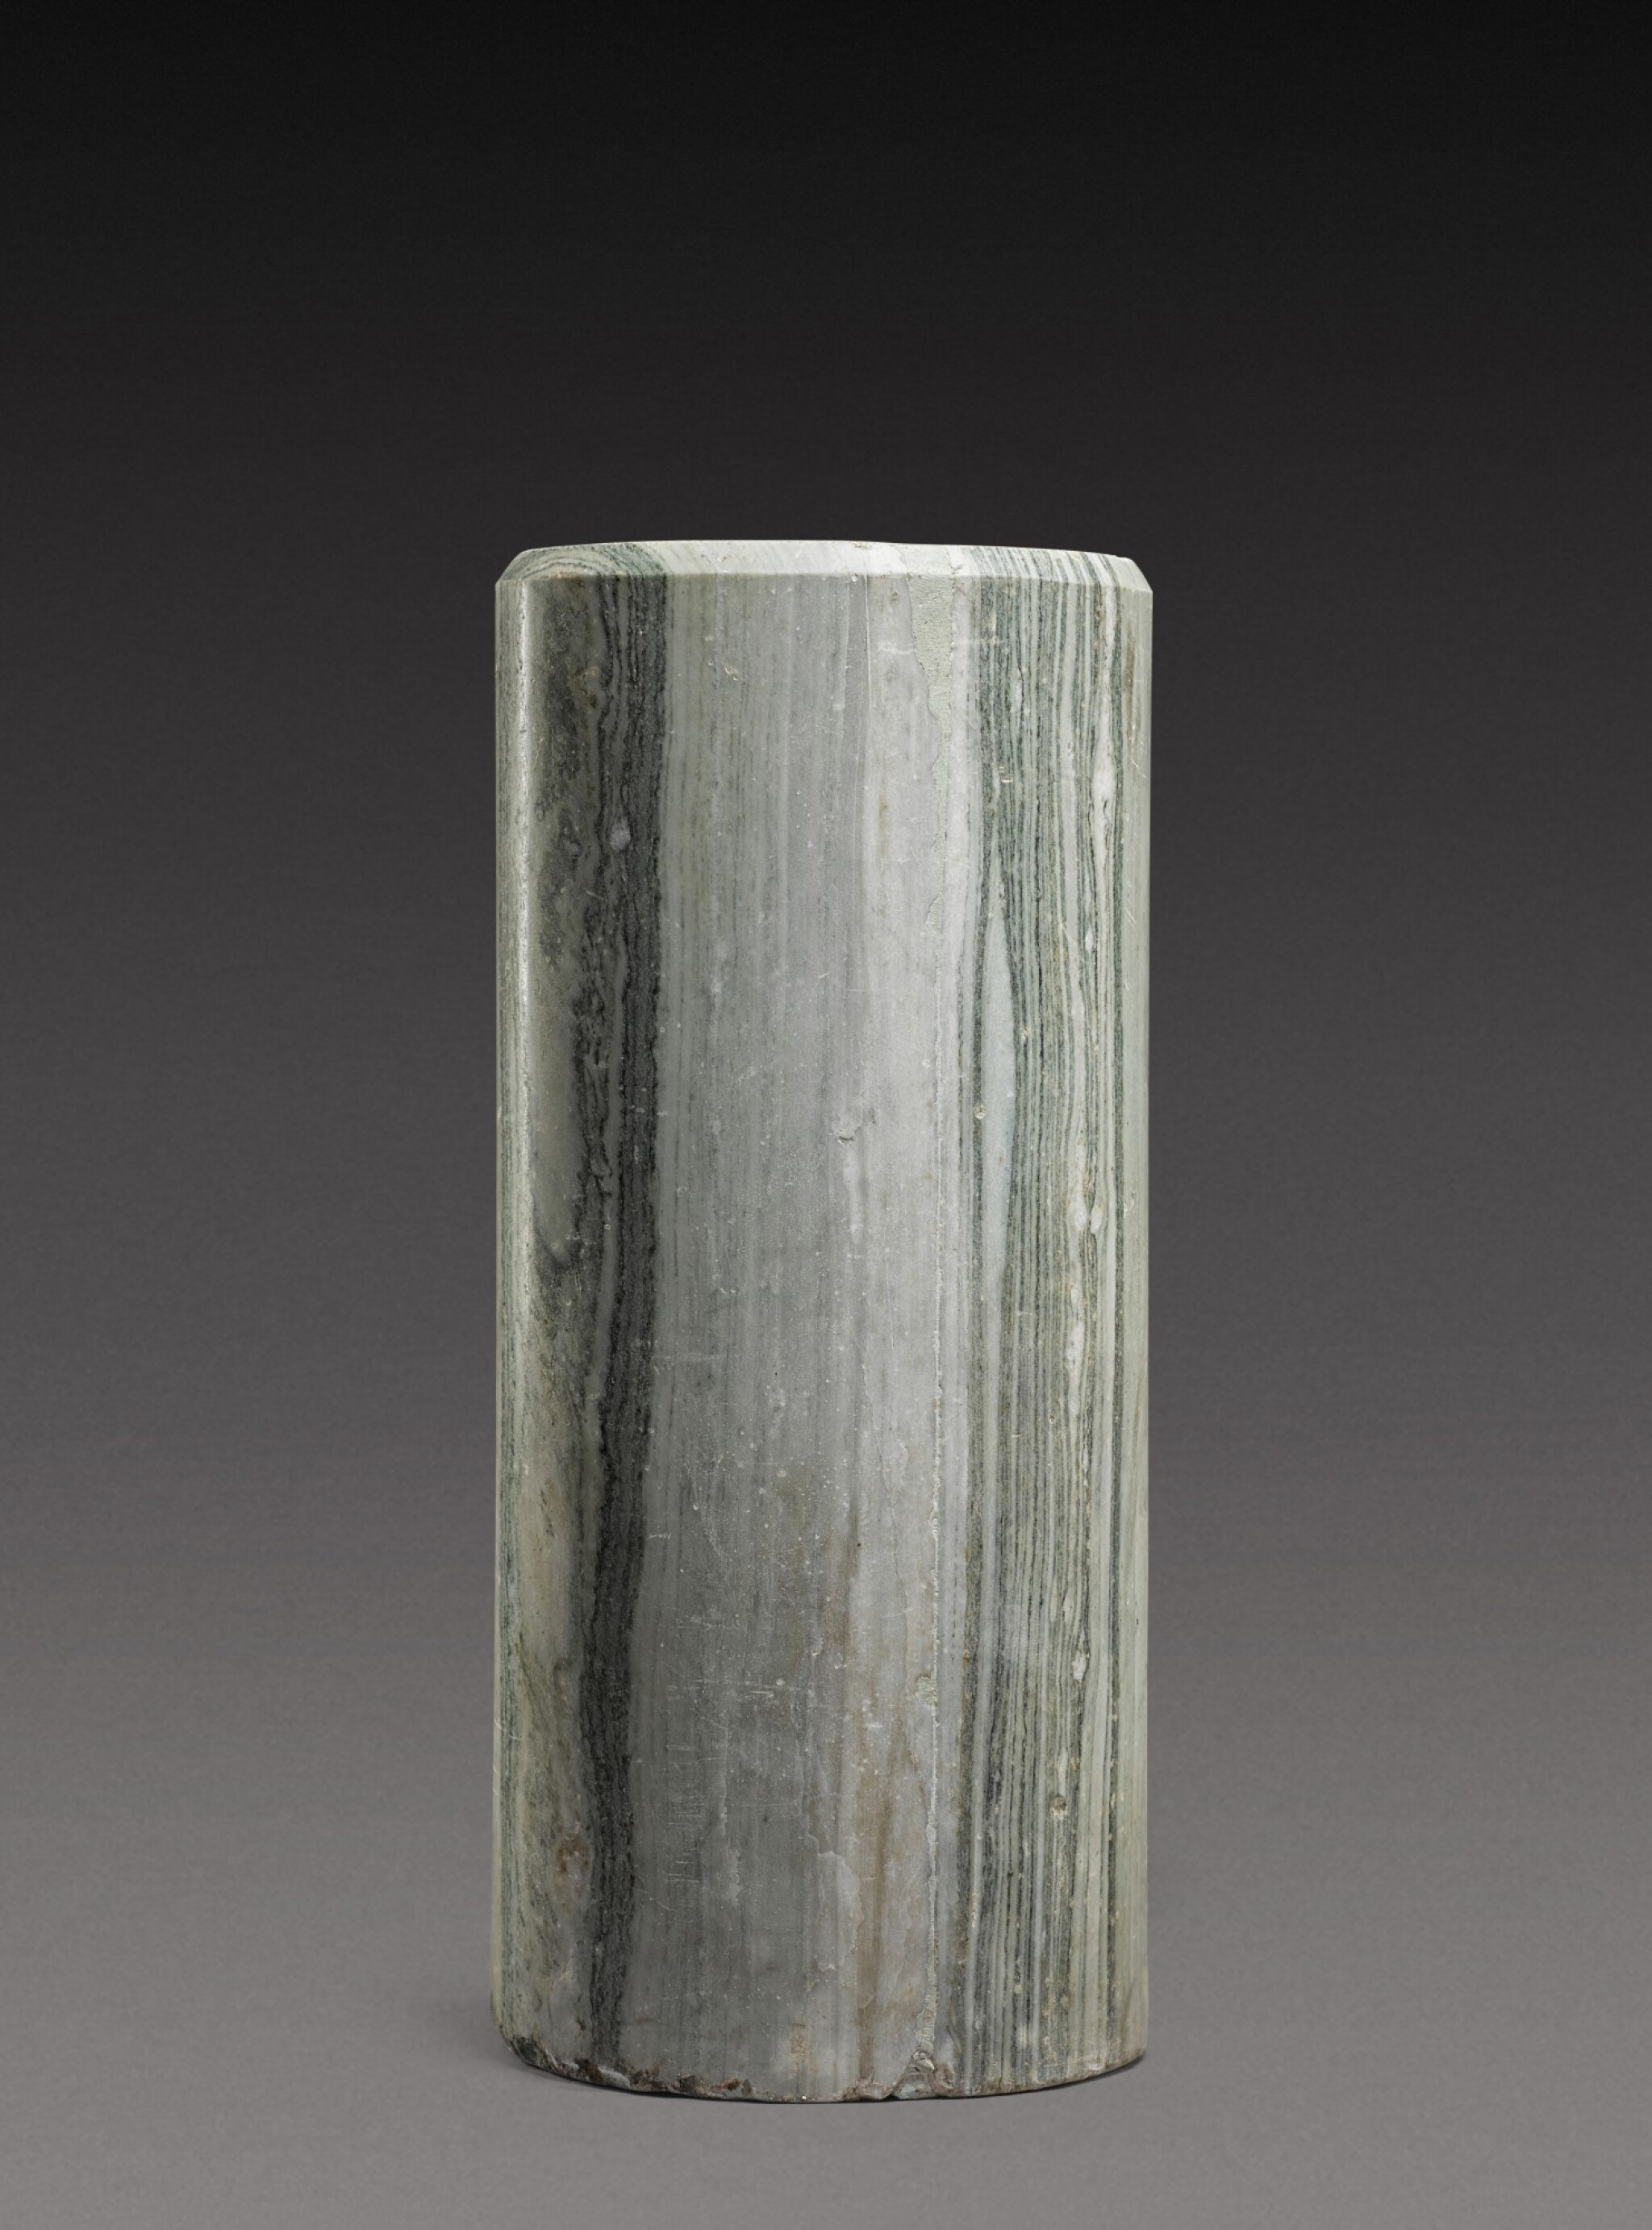 View 1 of Lot 118. Italian, possibly 18th century   Column.